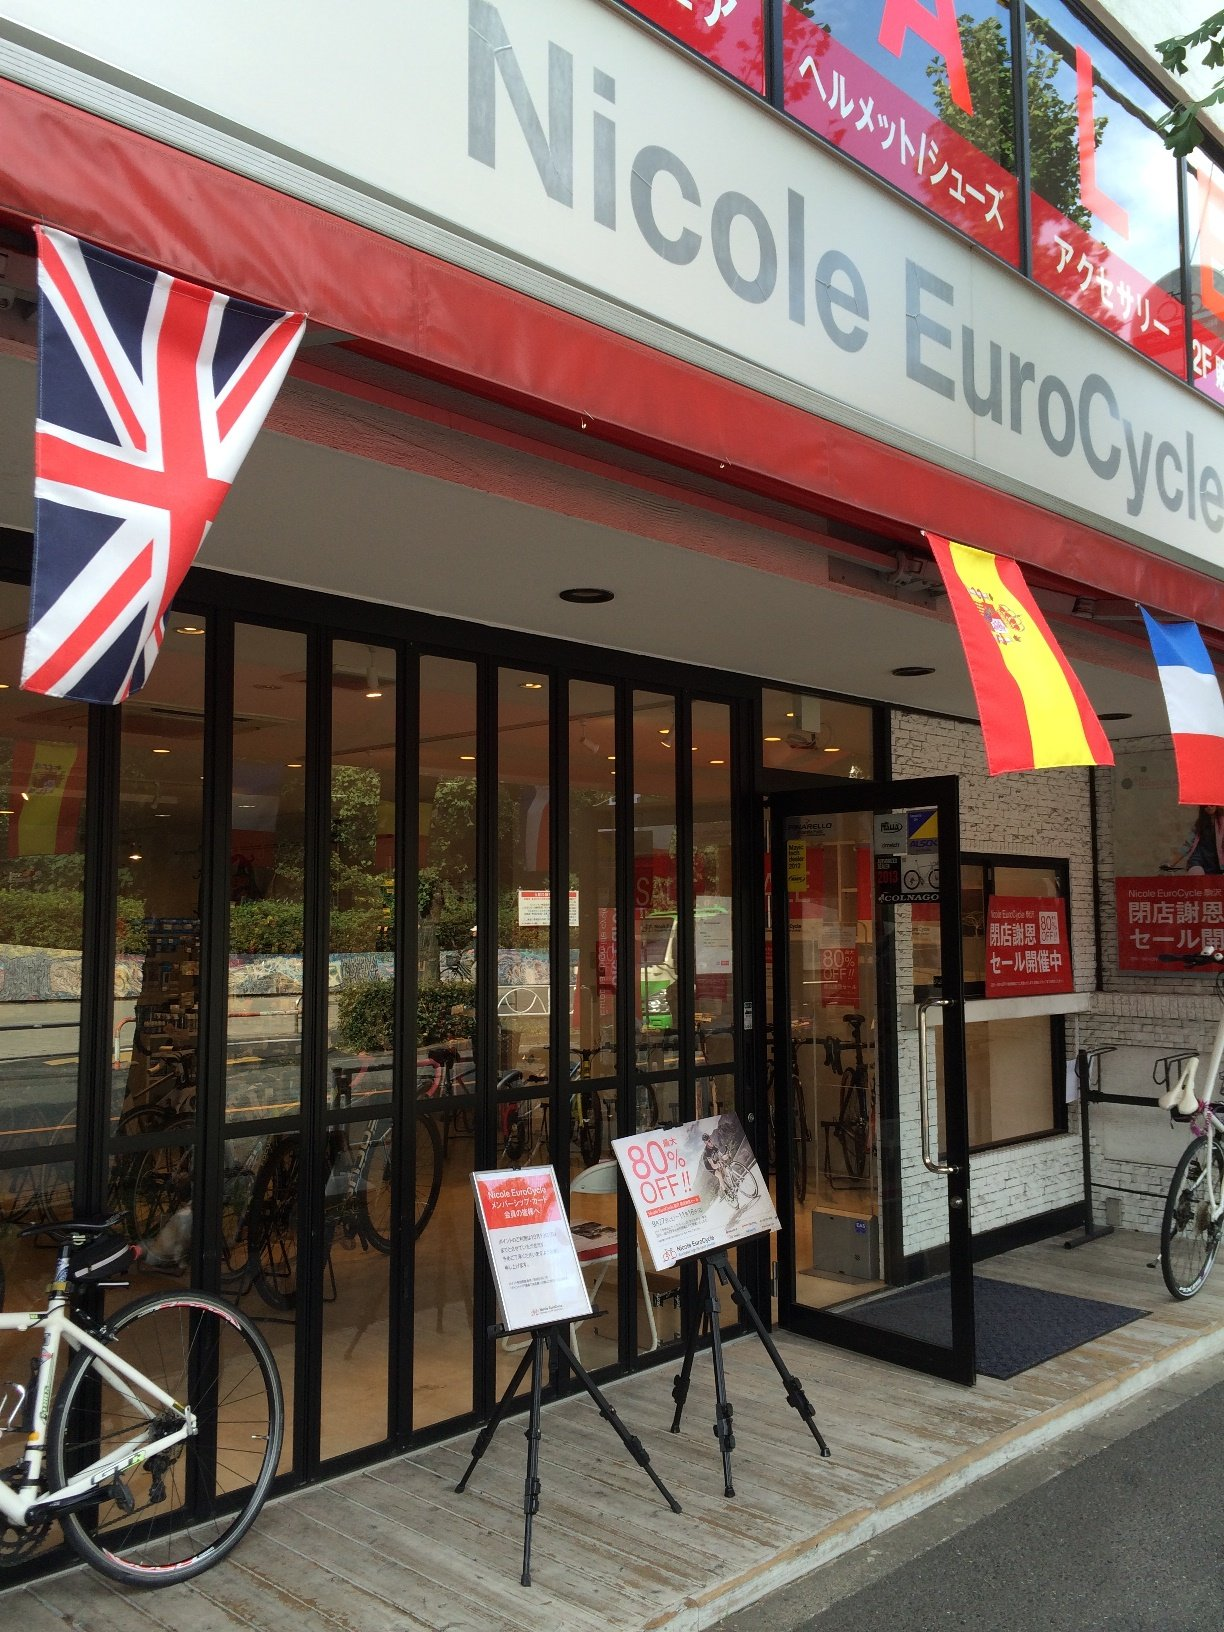 Nicole EuroCycle(ニコル ユーロサイクル) 駒沢店で閉店セール中